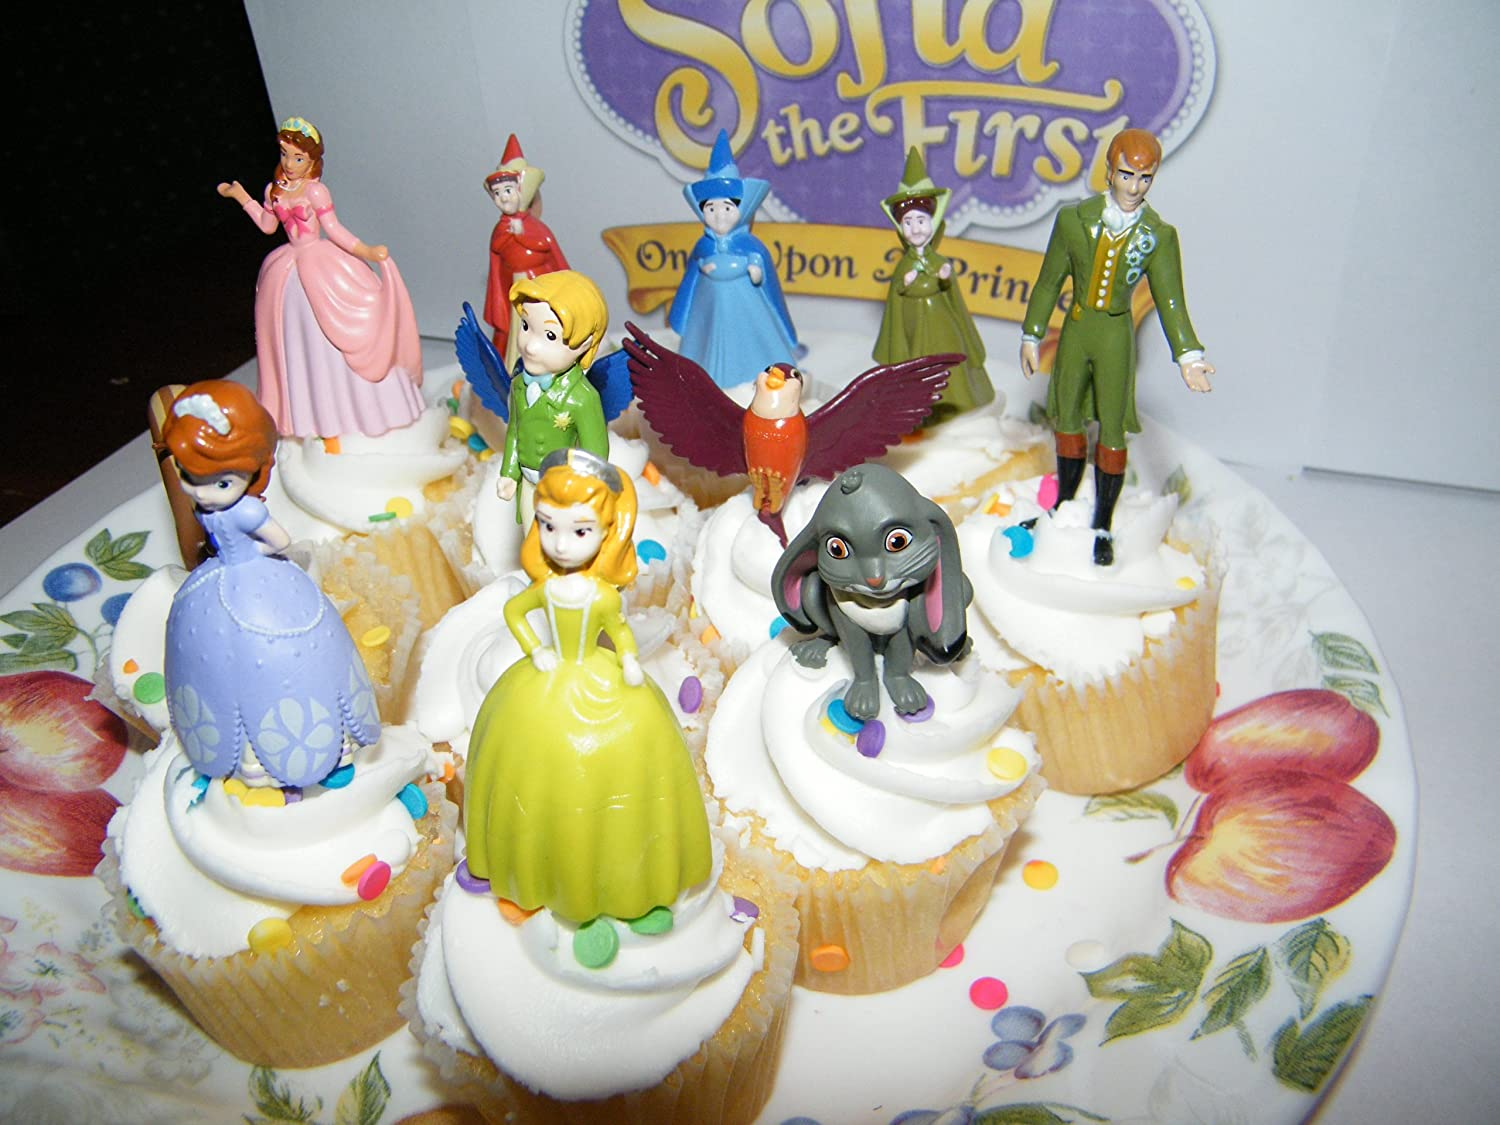 4 Animal Friends Disney Princess Sofia the First Cake Toppers Cupcake Party Favor Decorations Set of 12 includes the 3 Fairies King and Queen and More!